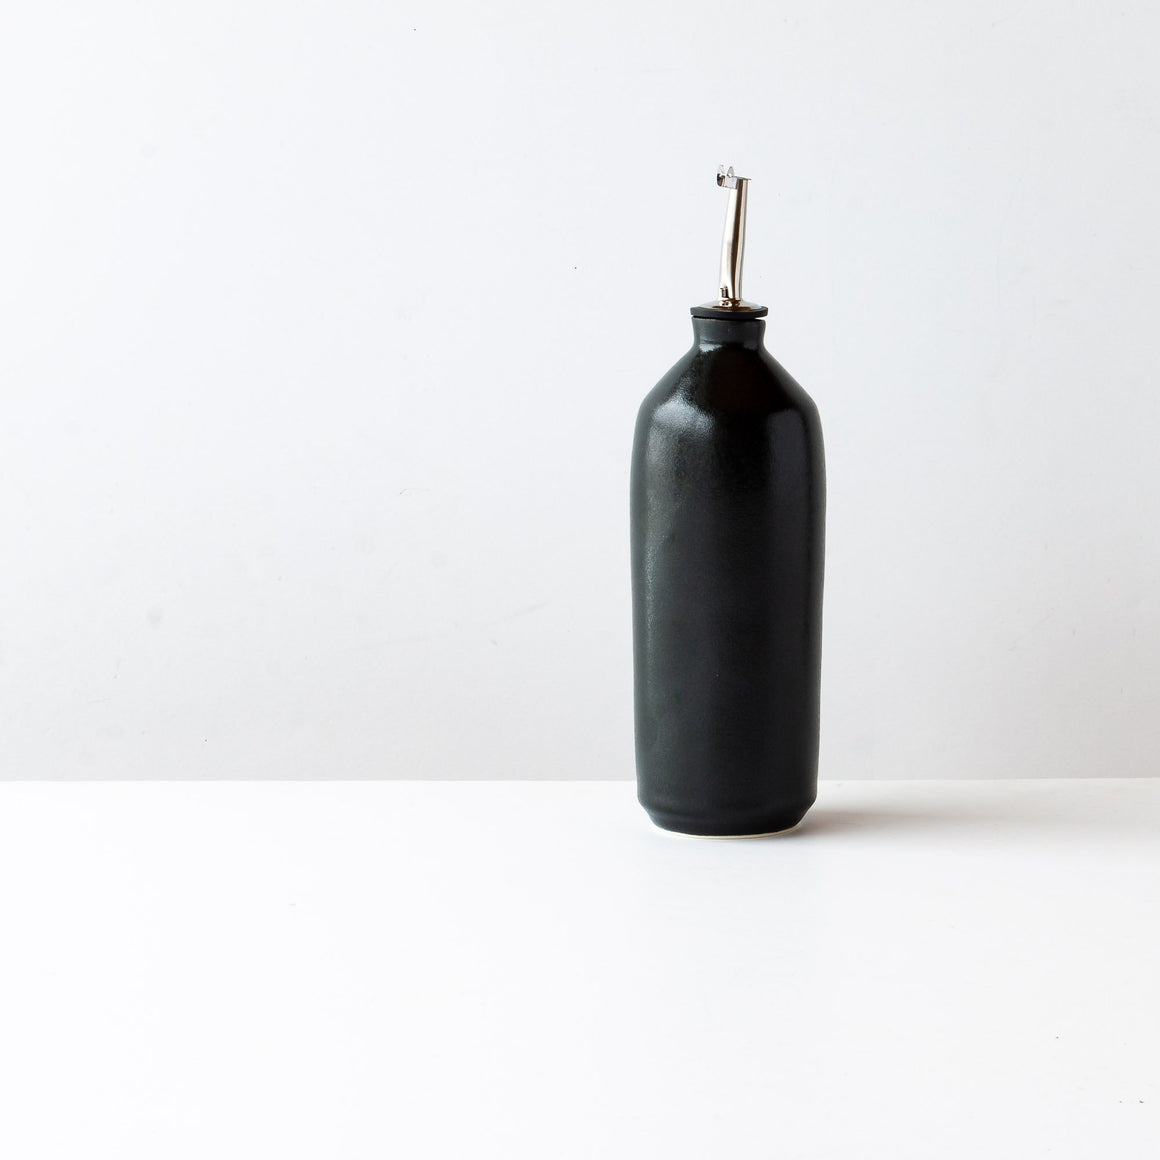 Handcrafted Black Glazed Porcelain Oil Bottle - Sold by Chic & Basta